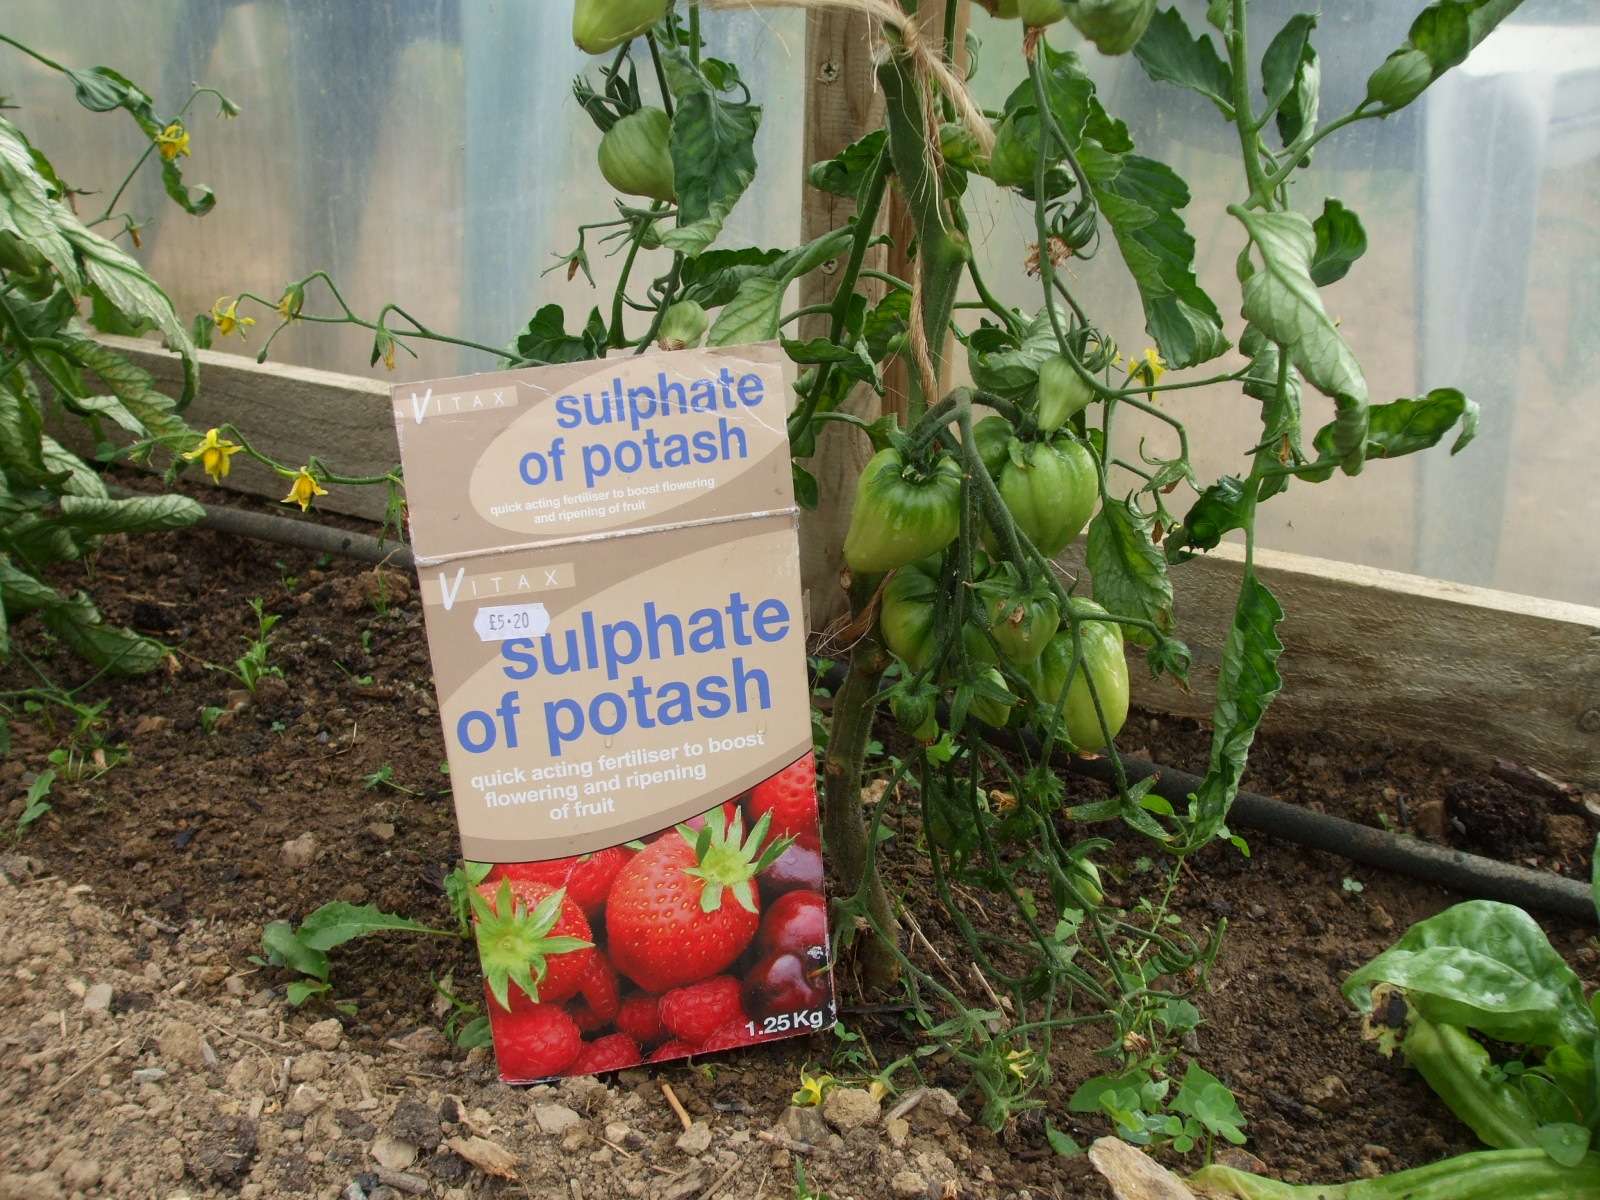 What is the best soil for tomatoes - This Article Summarizes The Key Points Someone Would Need To Know To Successfully Grow Tomato Plants